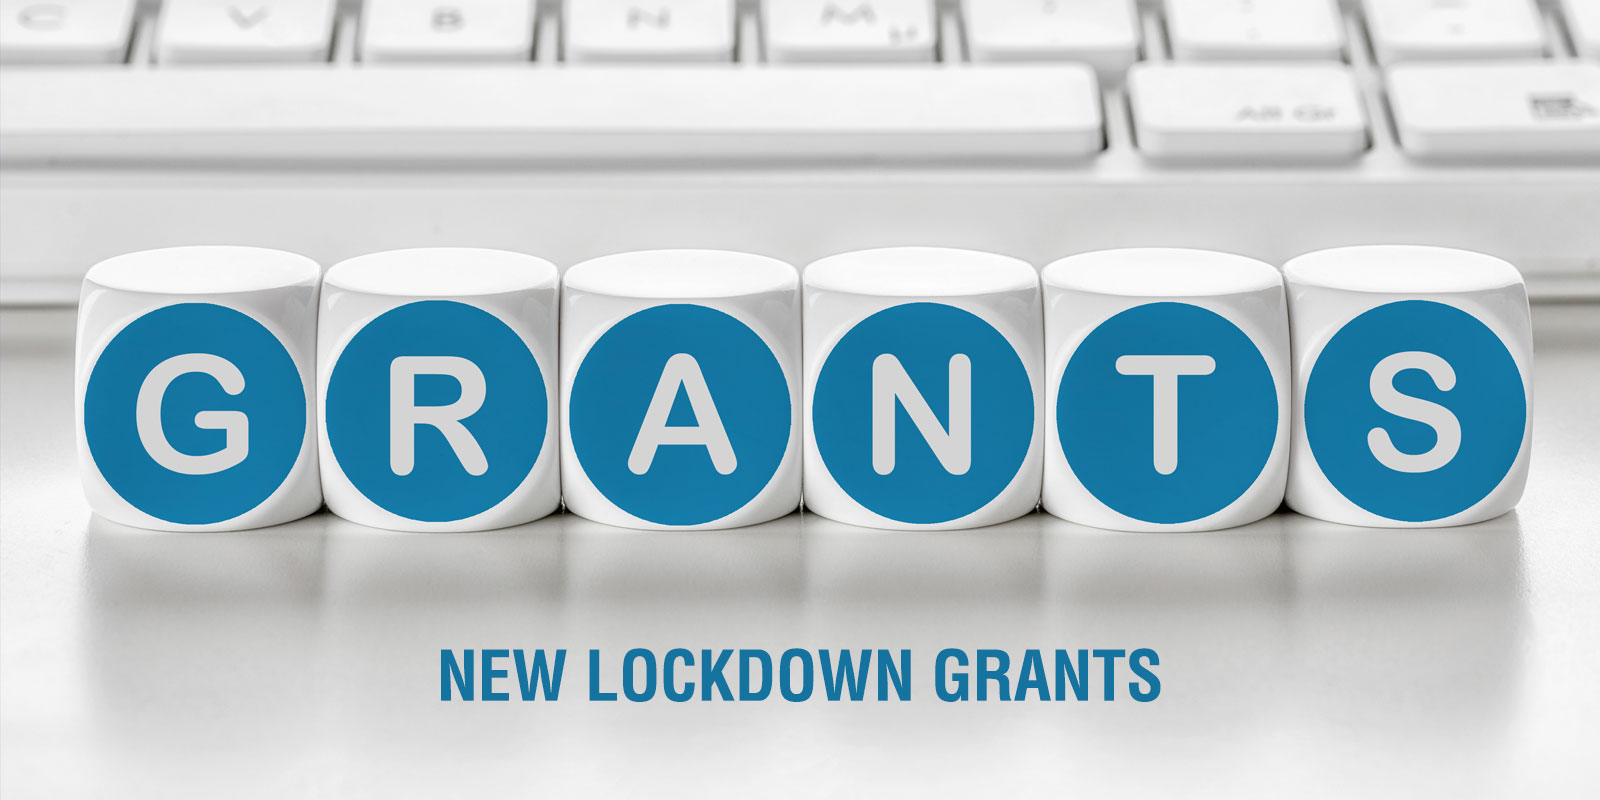 New Lockdown Grants